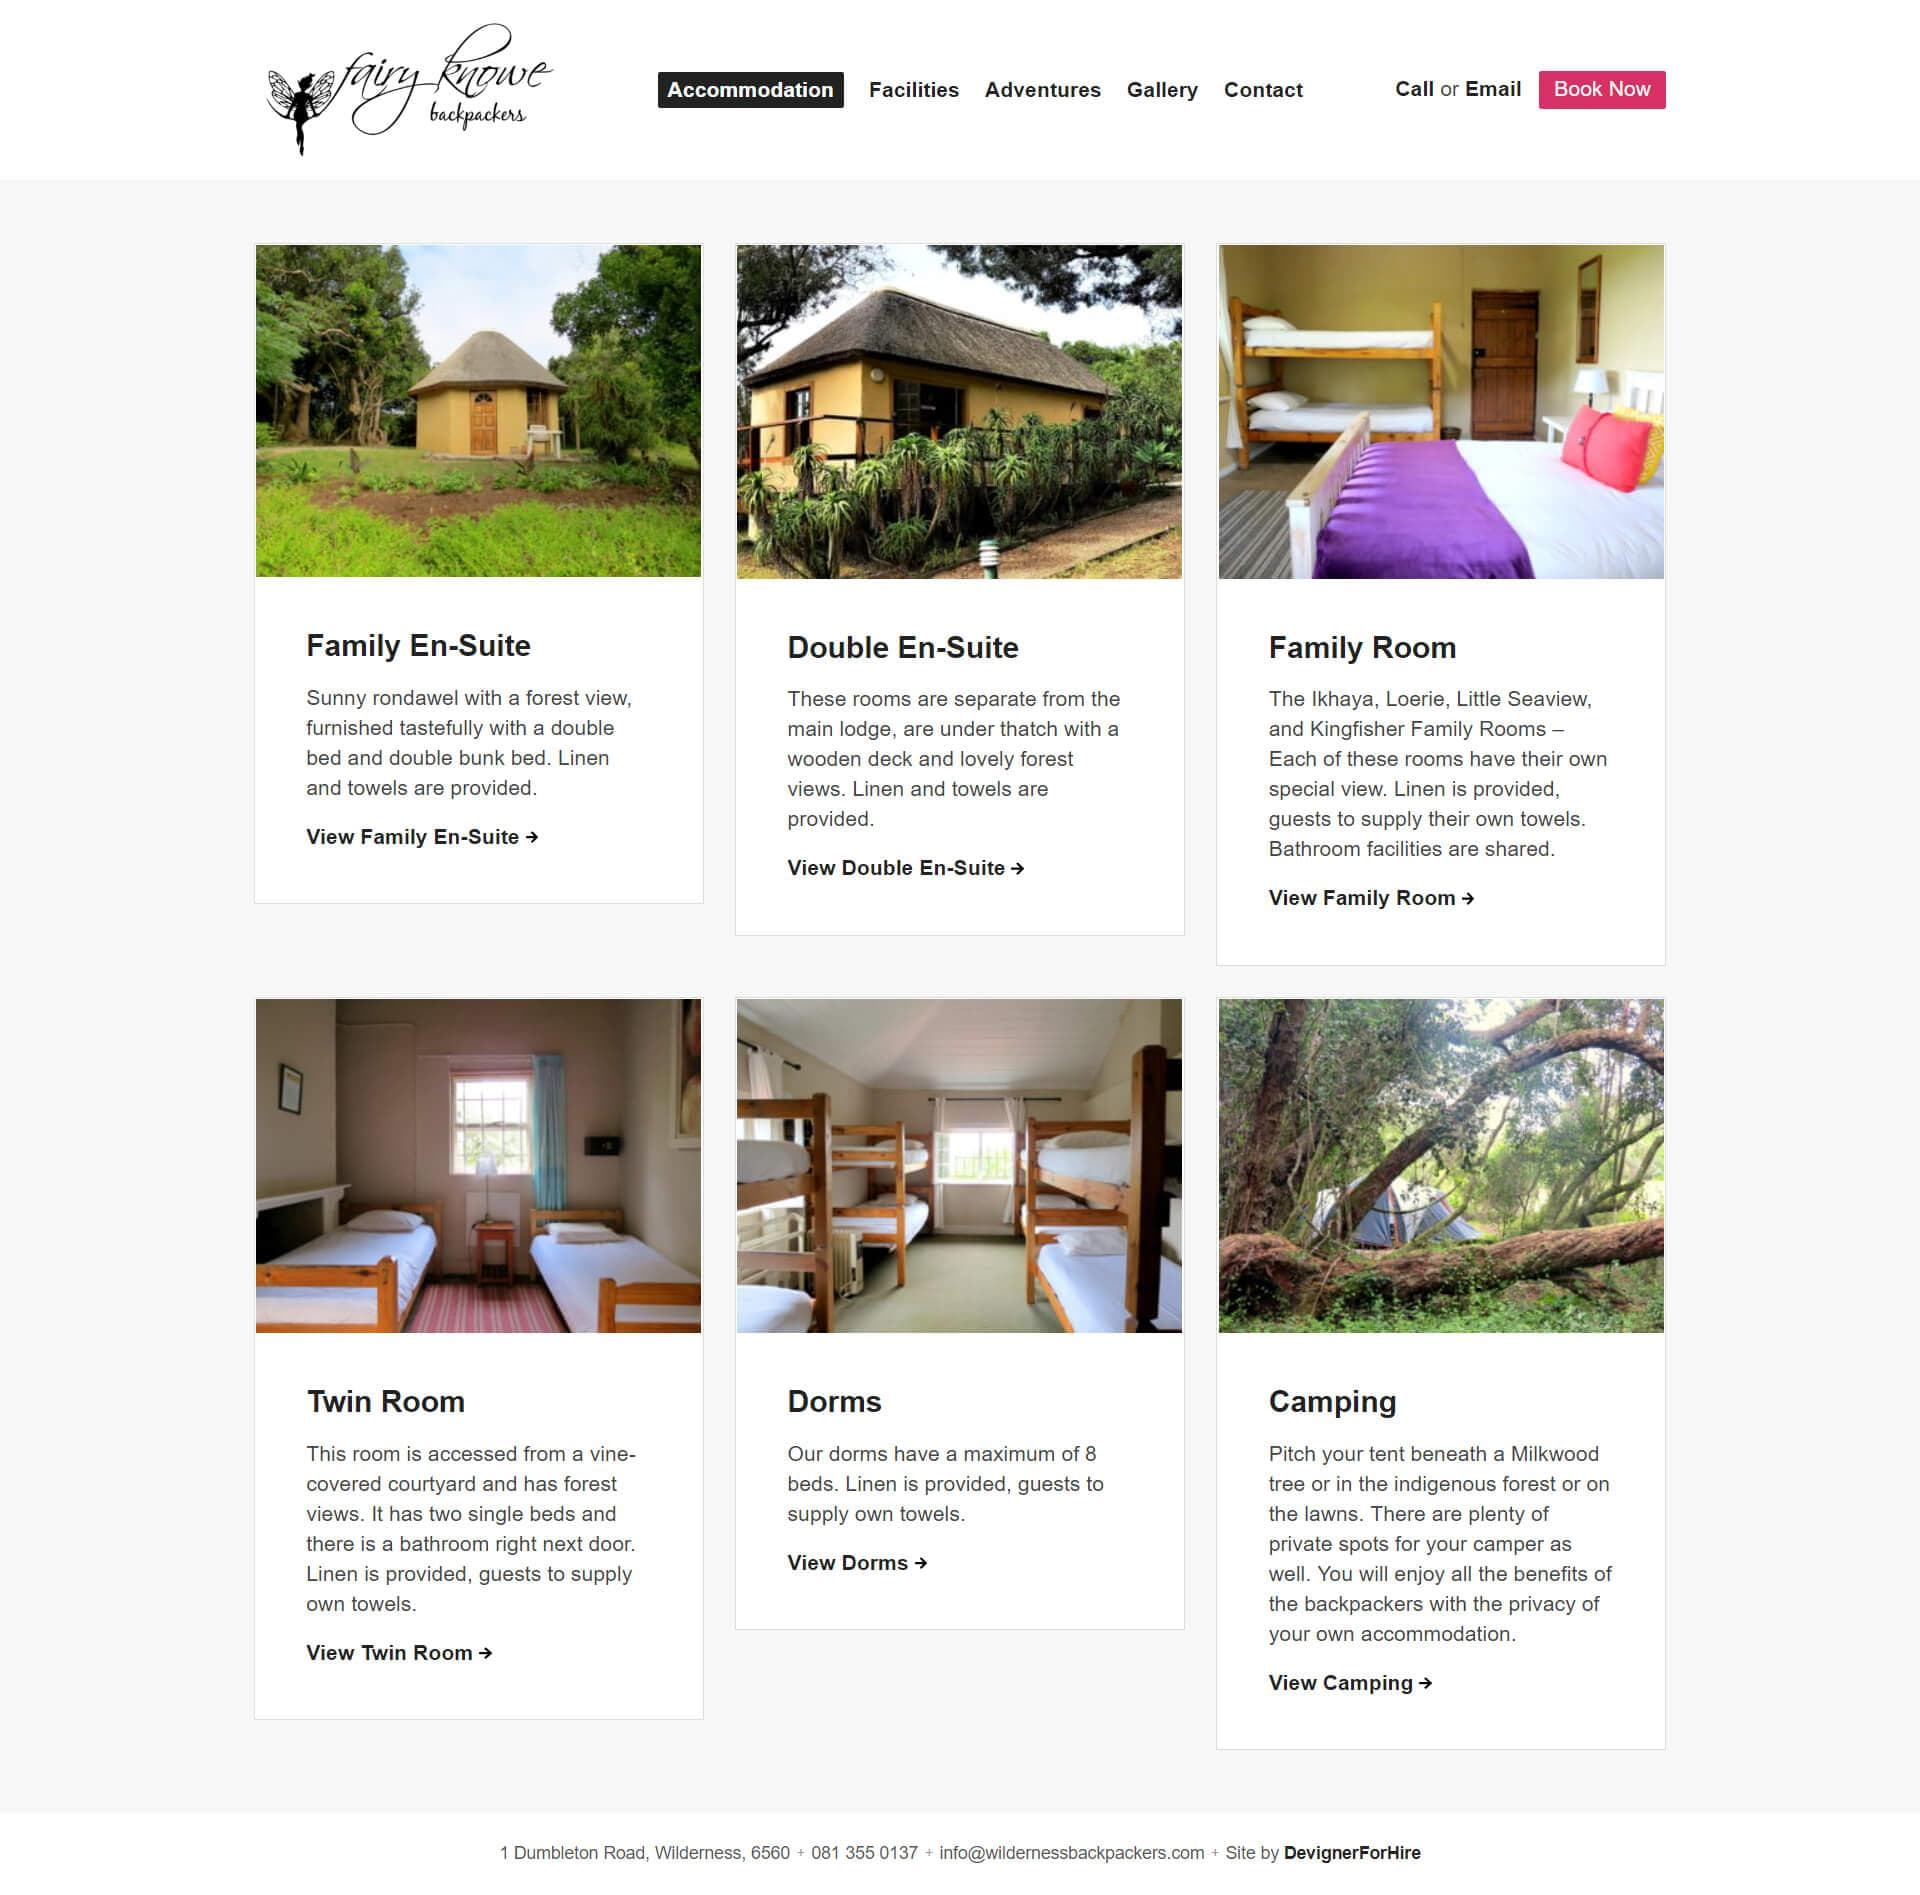 Fairy Knowe Backpackers - Accommodation